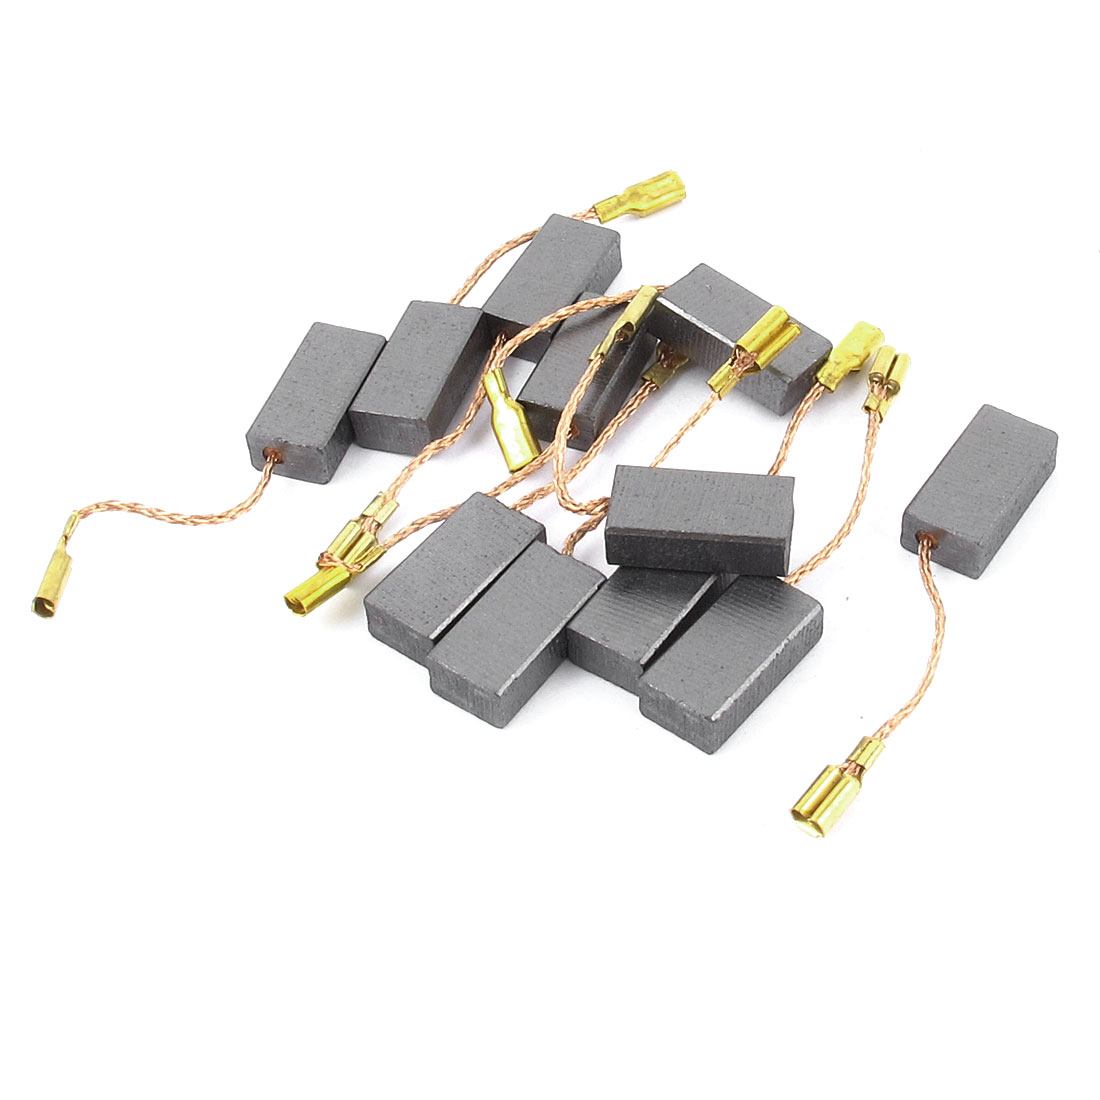 Dmiotech Hot Sale 10pcs/5 Pair 15 X 8 X 5mm Motor Carbon Brushes Replacement For Air Compressor Spare Part Power Tool